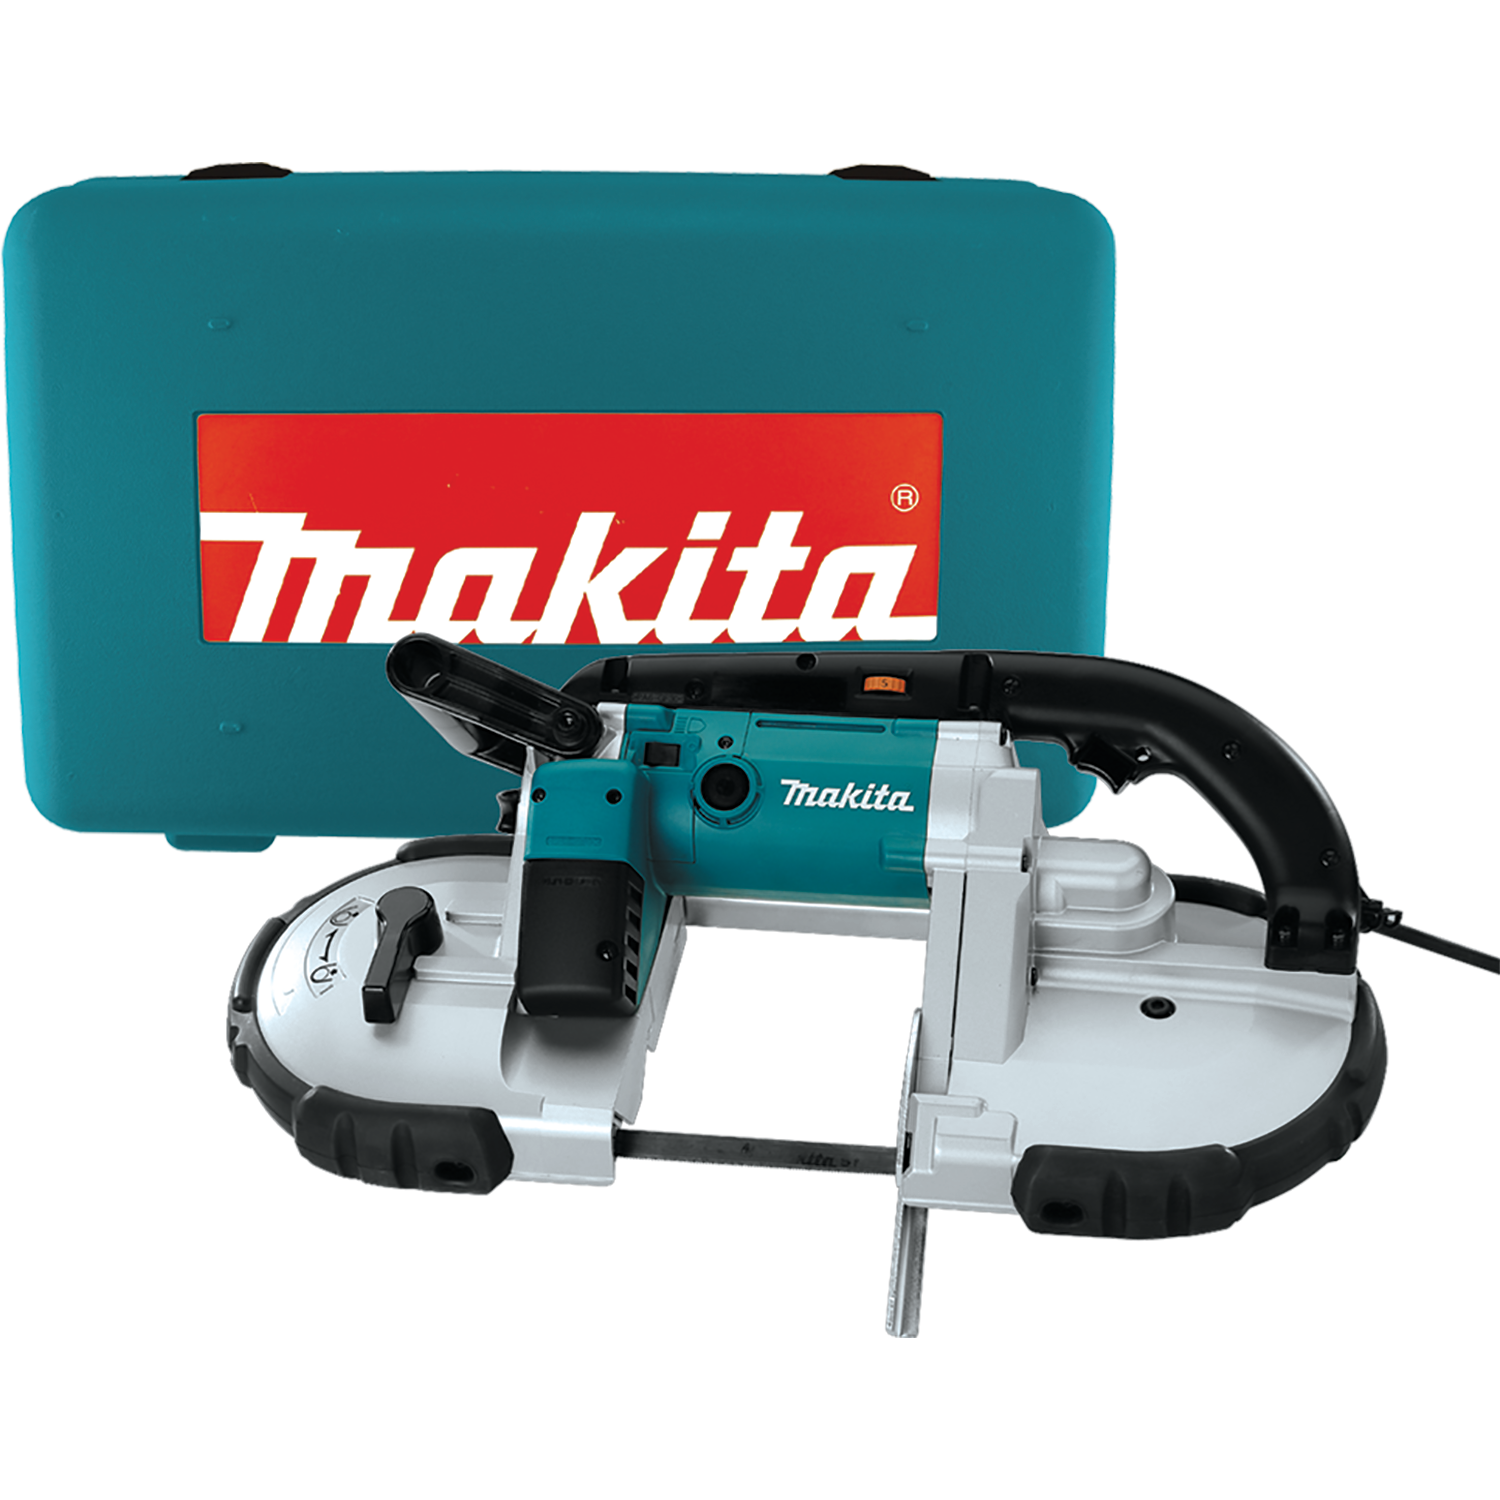 Makita usa product details 2107fzk 2107fzk greentooth Image collections